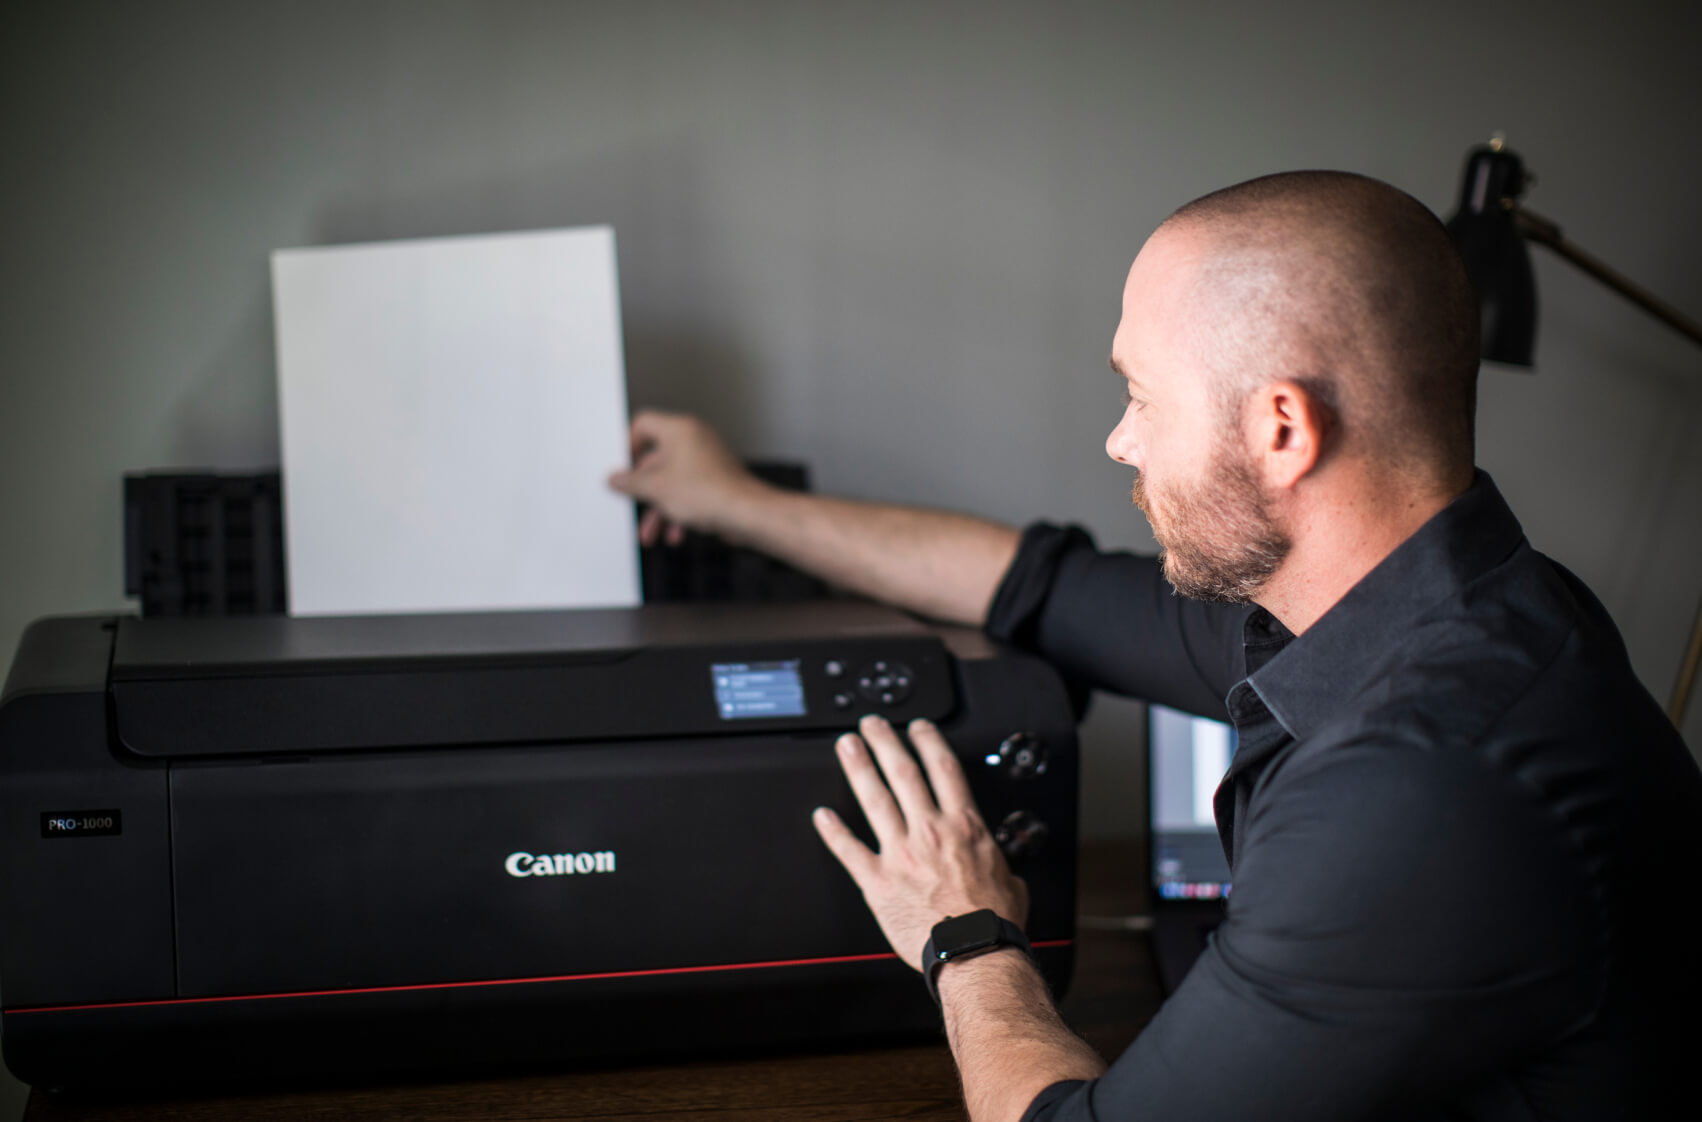 Michael Anthony loading paper into the printer